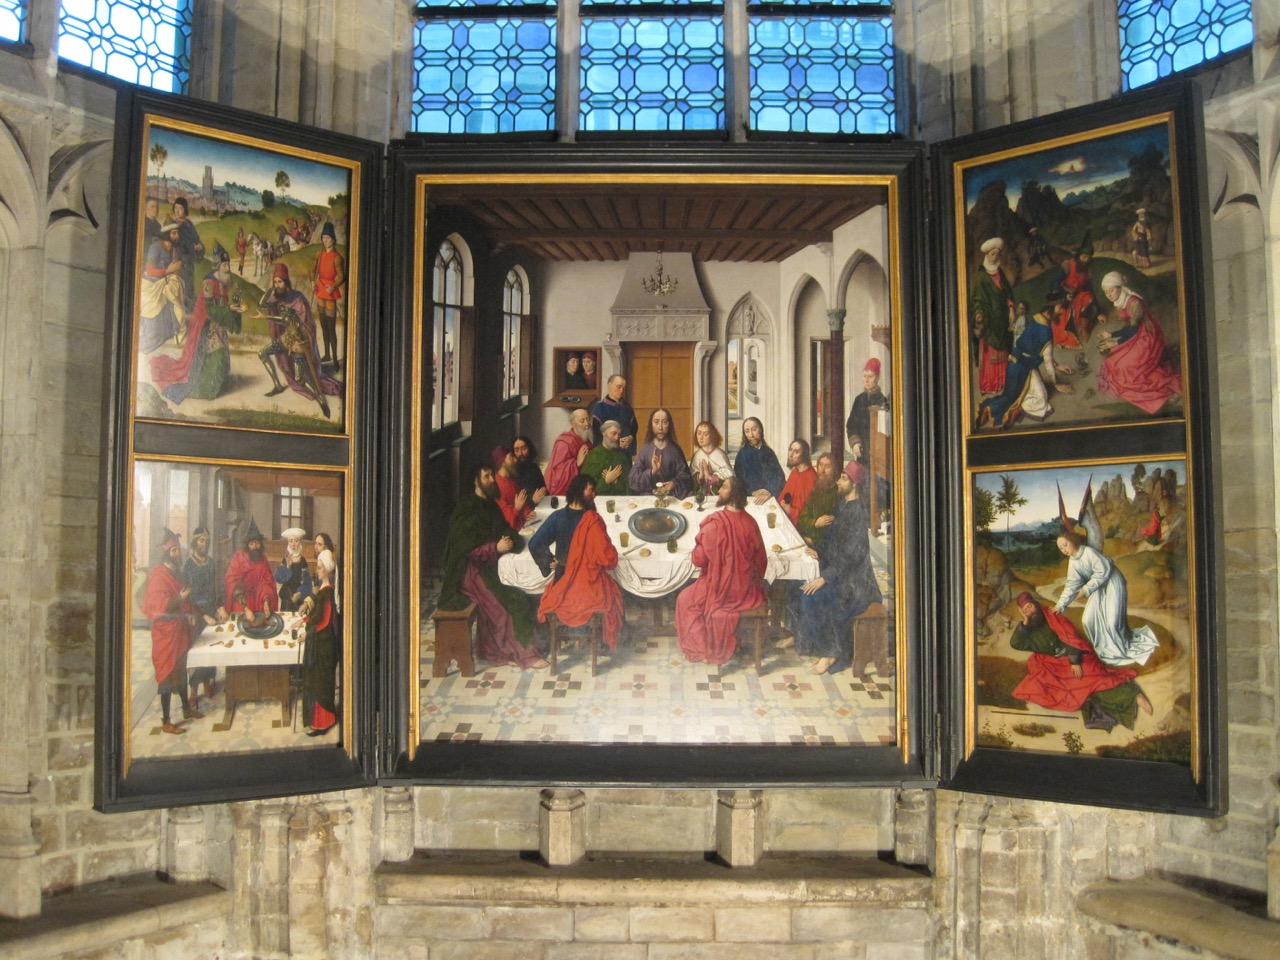 Northern Renaissance Art in Belgium – Based in Belgium